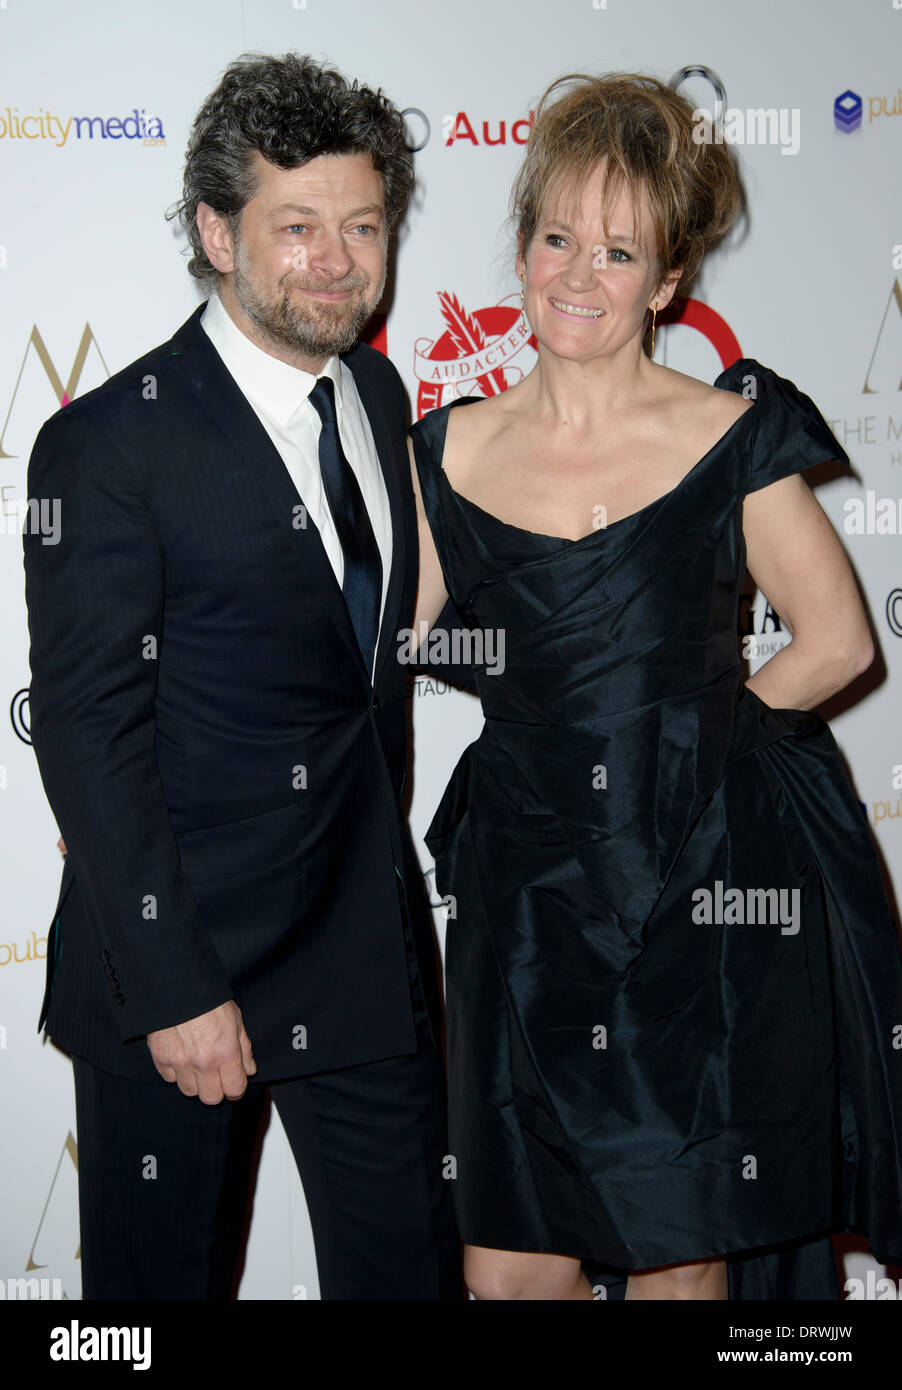 Andy Serkis and Lorraine Ashbourne arrive for The London Critics Circle Awards, in London. - Stock Image